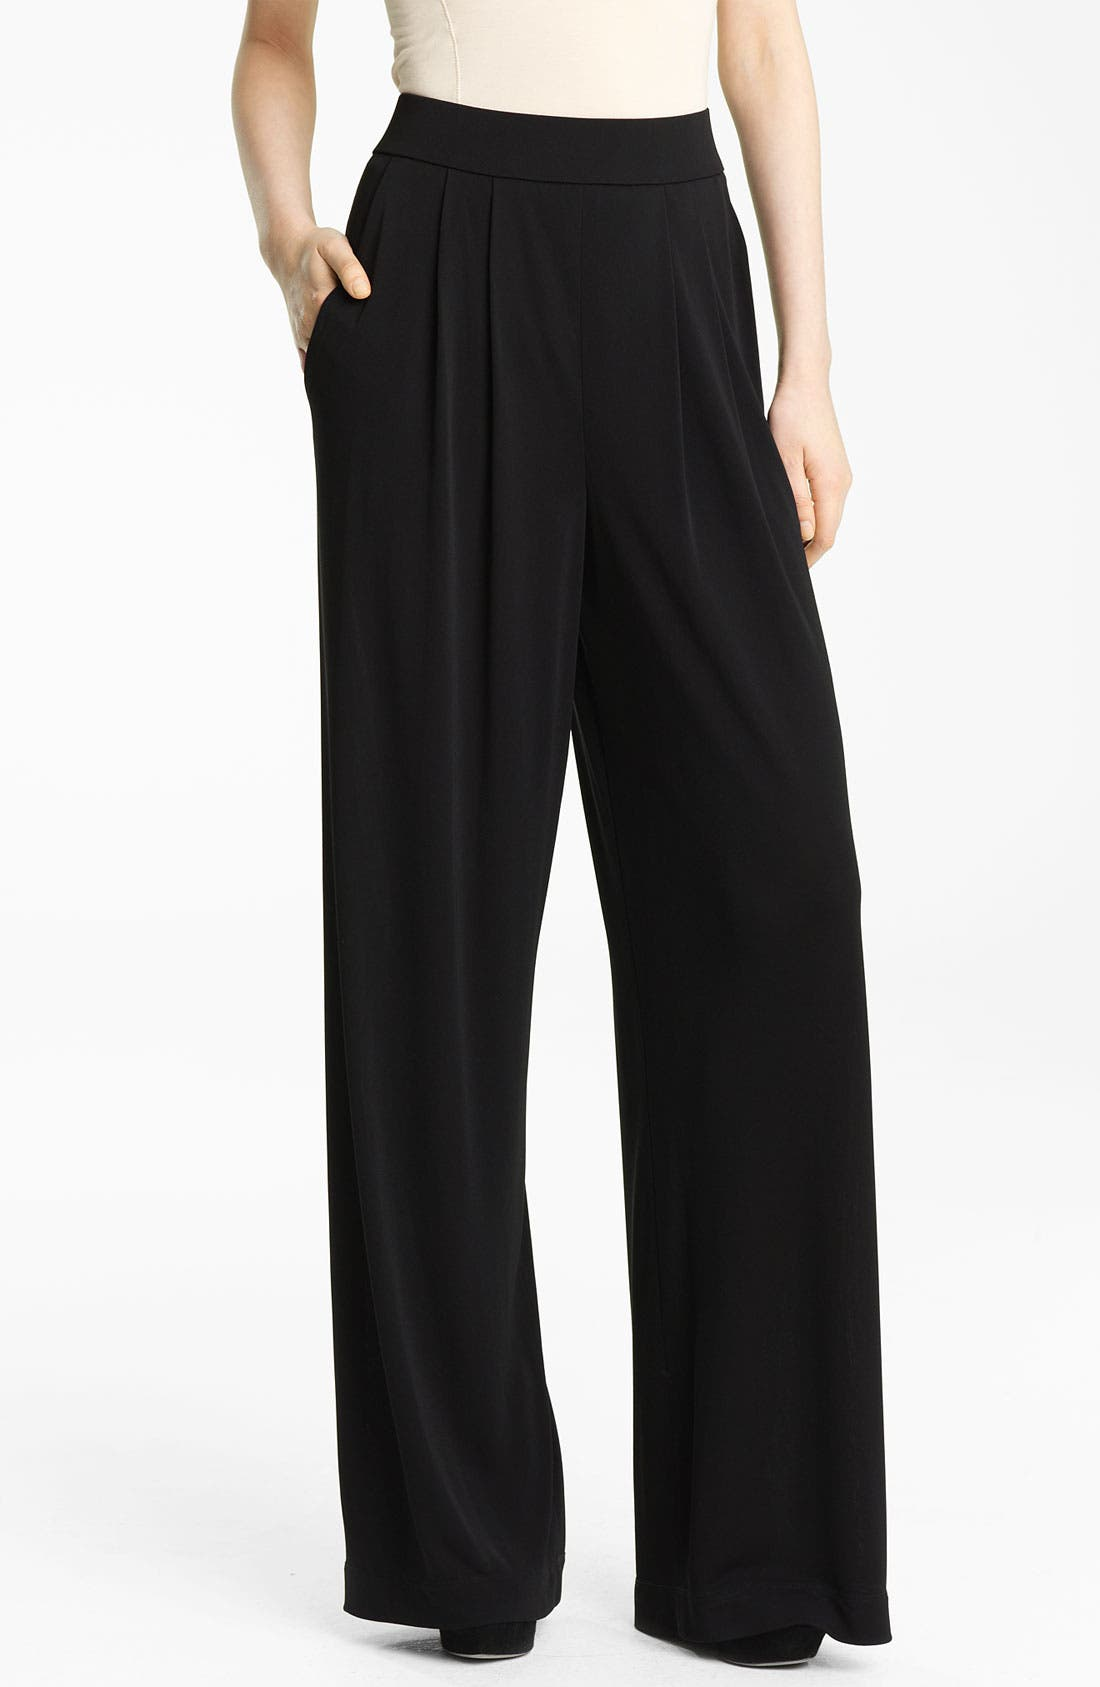 Alternate Image 1 Selected - Lida Baday Pleated Matte Jersey Pants